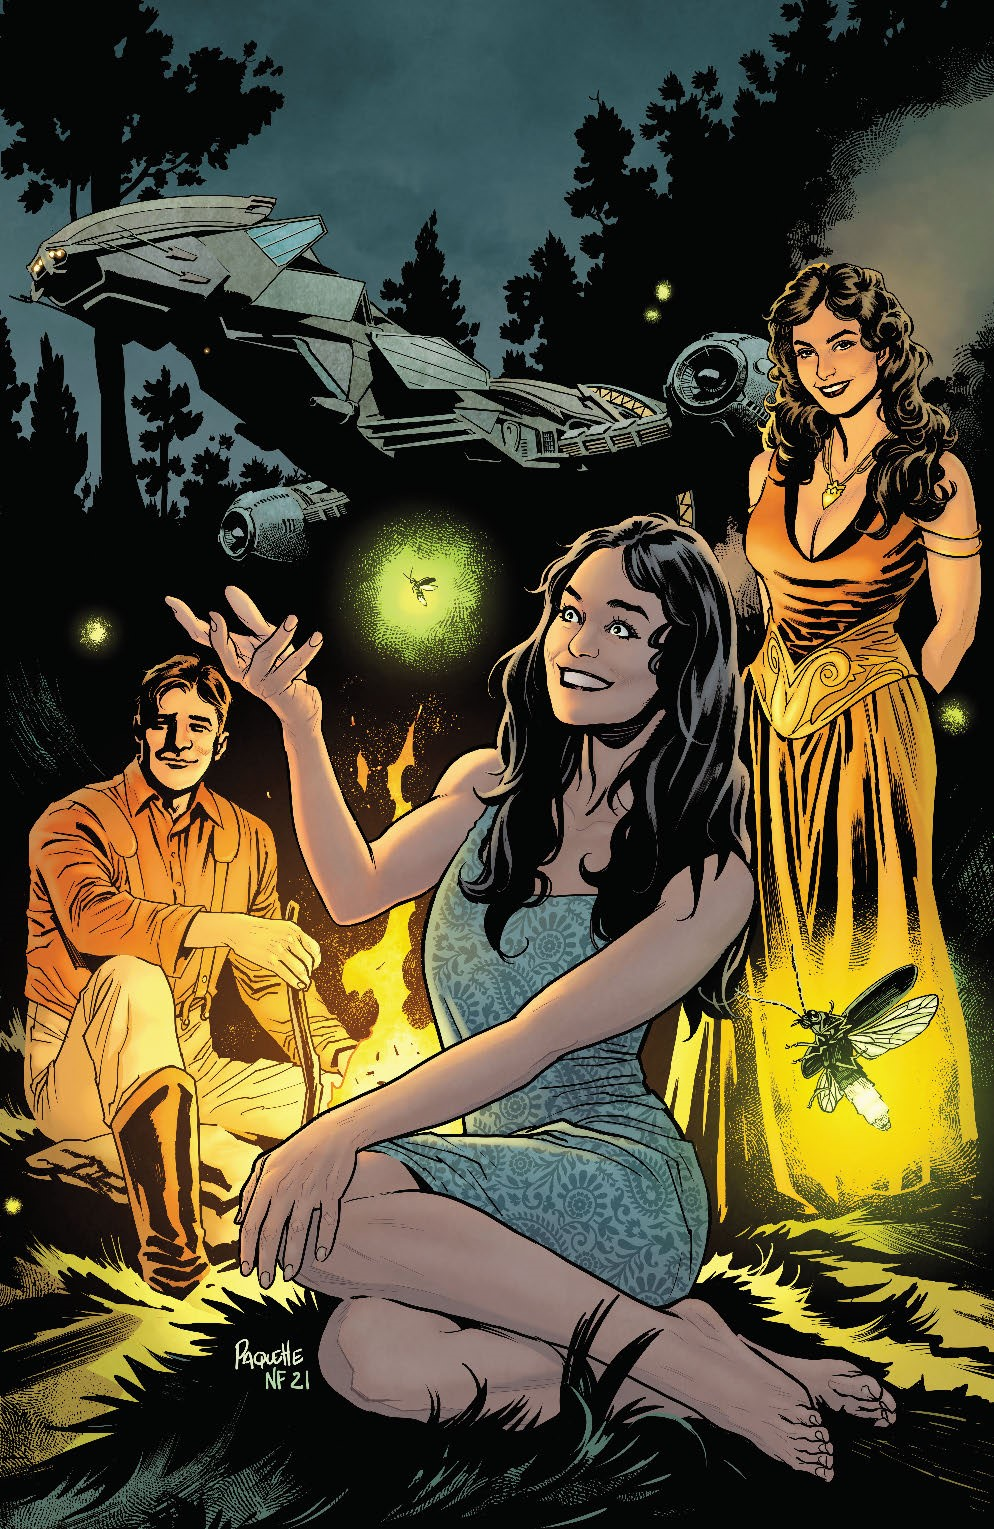 Firefly_031_Cover_D_Variant ComicList Previews: FIREFLY #31